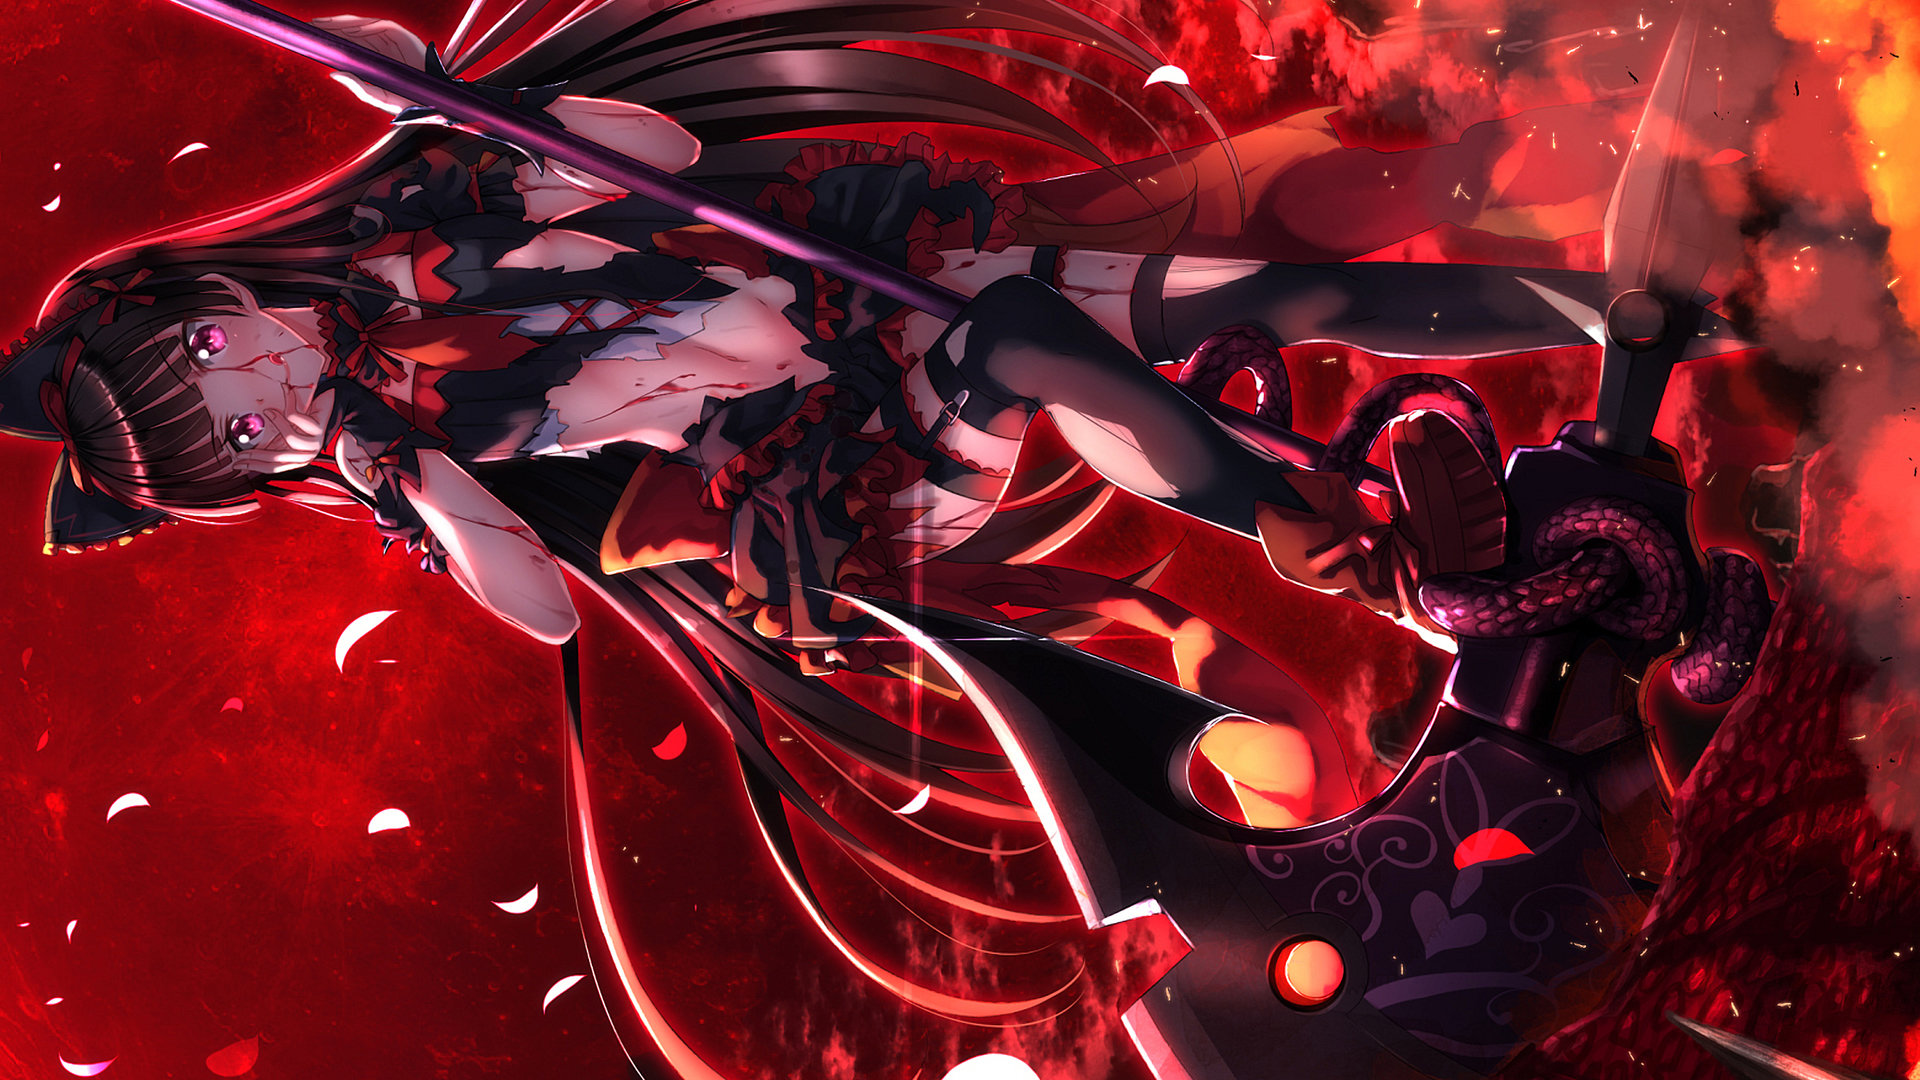 Download 1080p Rory Mercury computer wallpaper ID:409009 for free